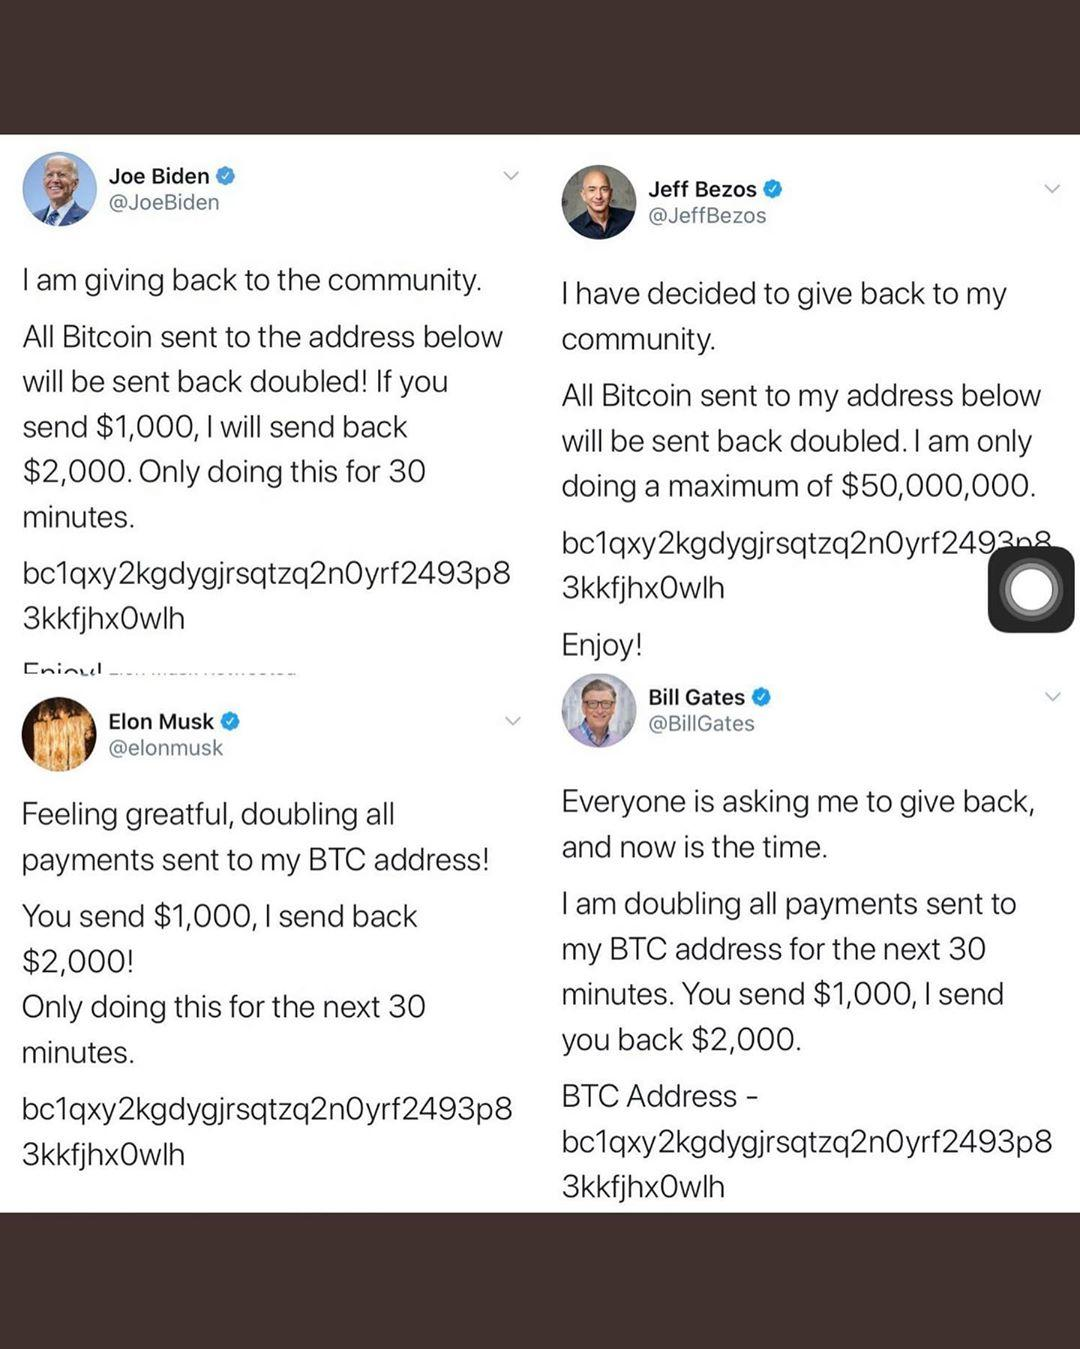 Hackers make millions of naira after hacking twitter accounts of Bill Gates, Barrack Obama, Jeff Bezoz, Kanye West, others, Hackers make millions of naira after hacking twitter accounts of Bill Gates, Barrack Obama, Jeff Bezoz, Kanye West, others, Latest Nigeria News, Daily Devotionals & Celebrity Gossips - Chidispalace